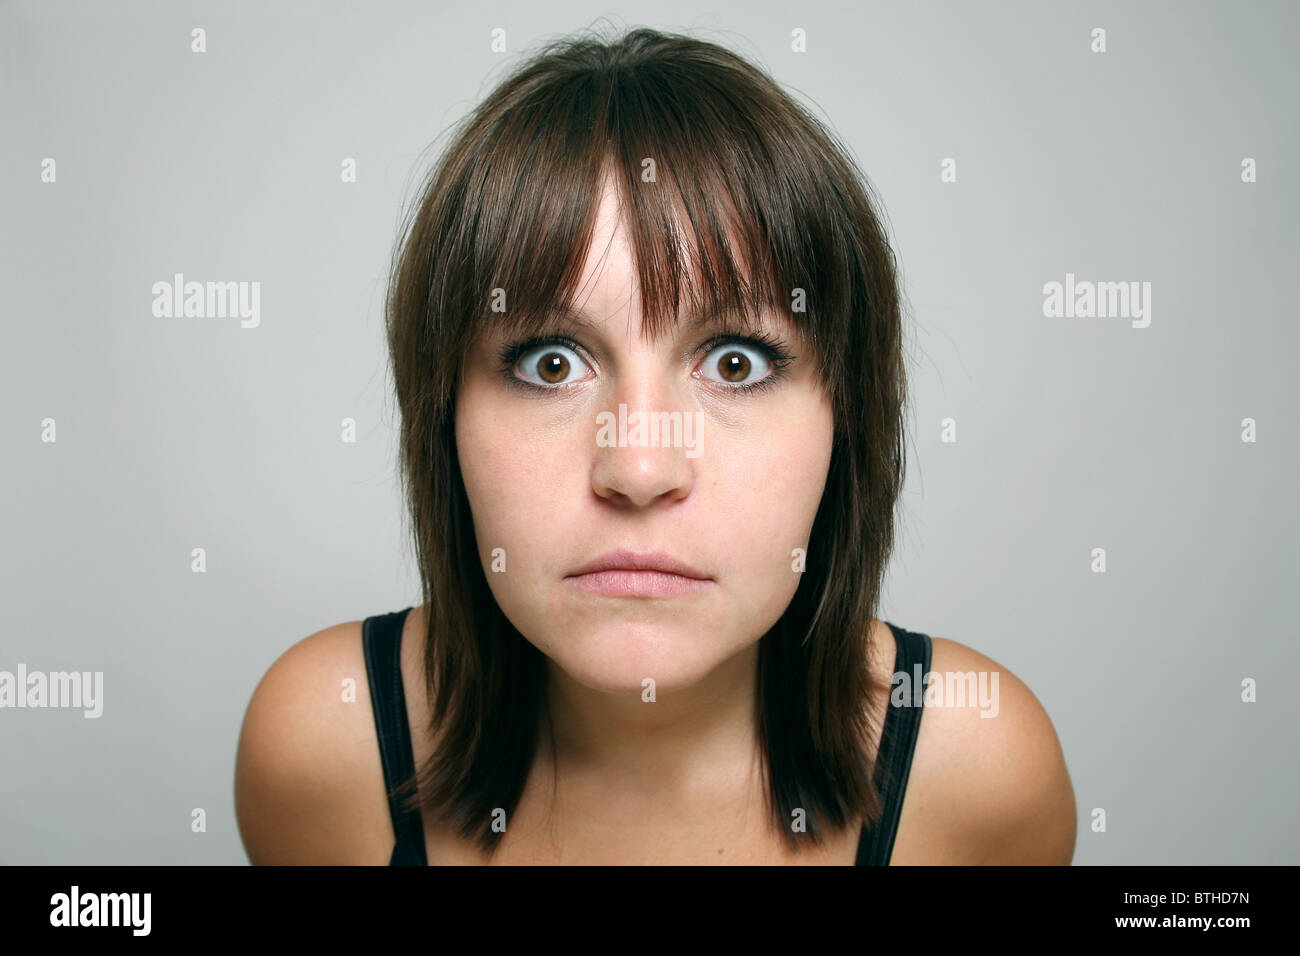 A frightened woman - Stock Image